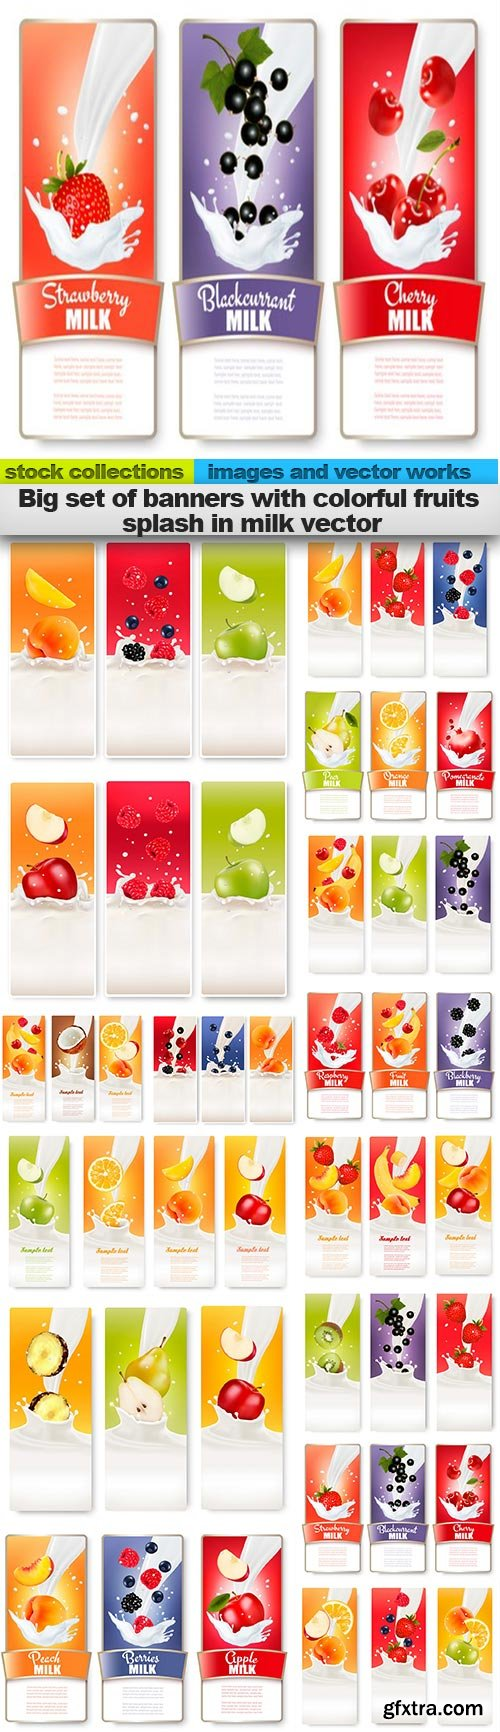 Big set of banners with colorful fruits splash in milk vector, 15 x EPS